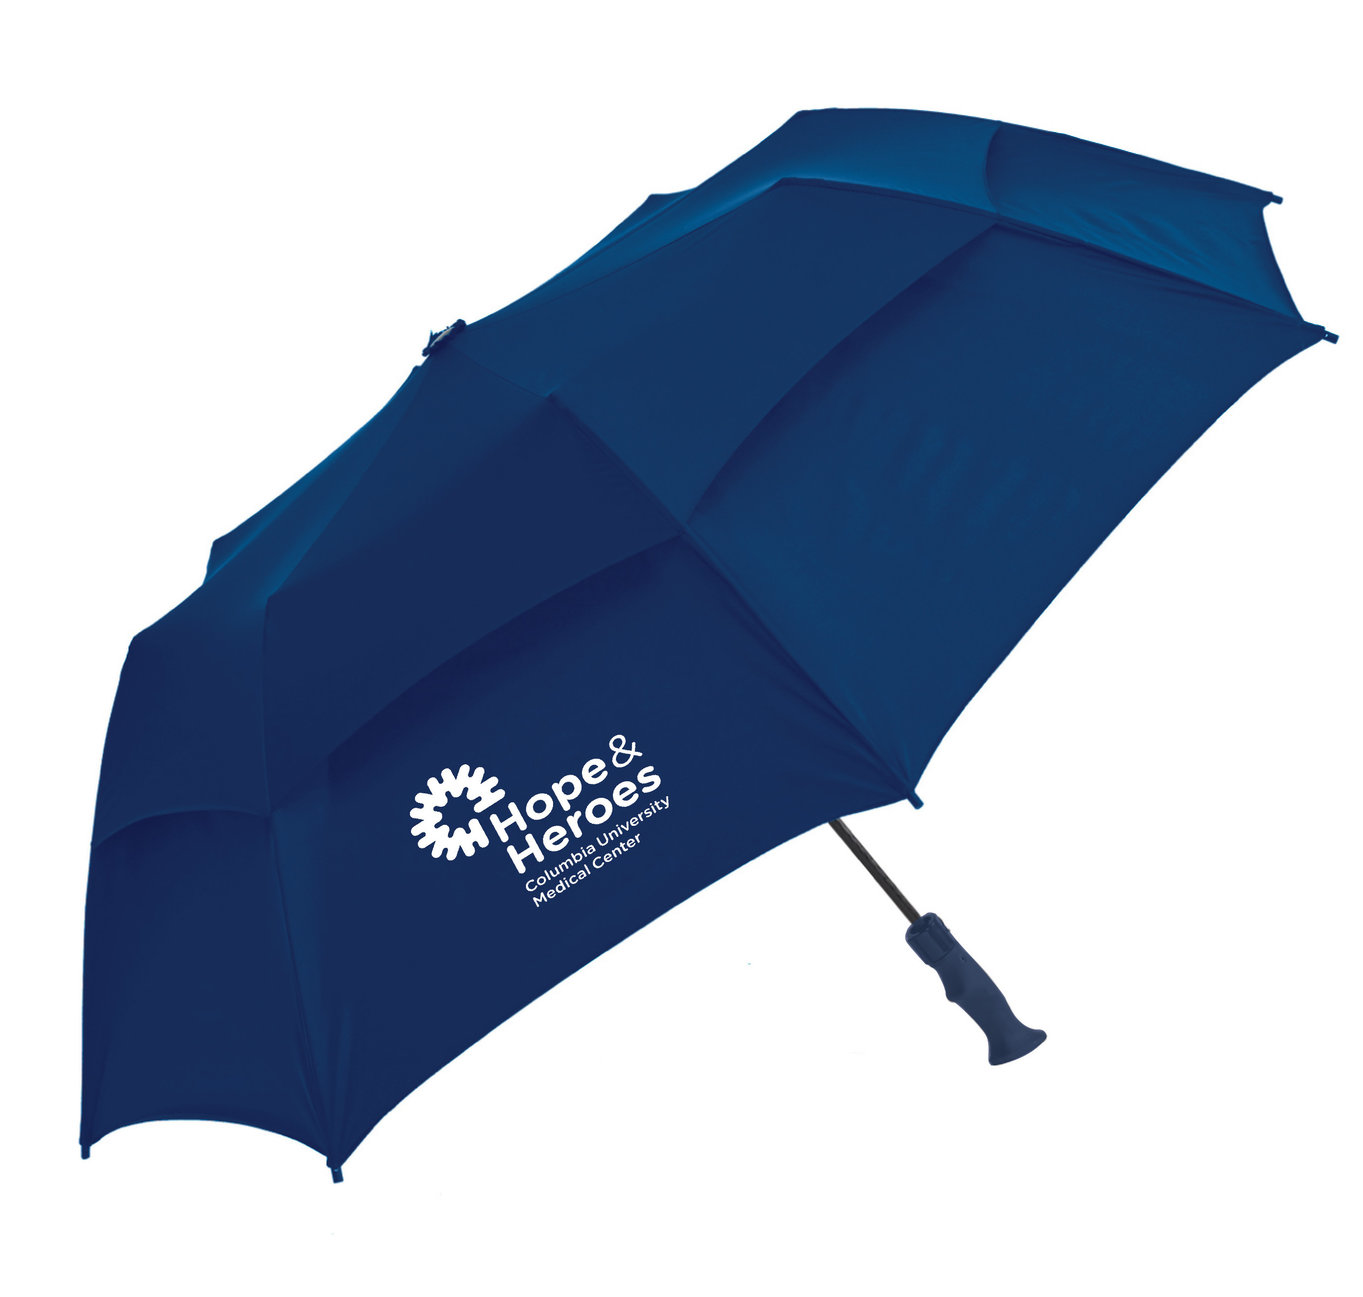 walk 2017 incentive - umbrella